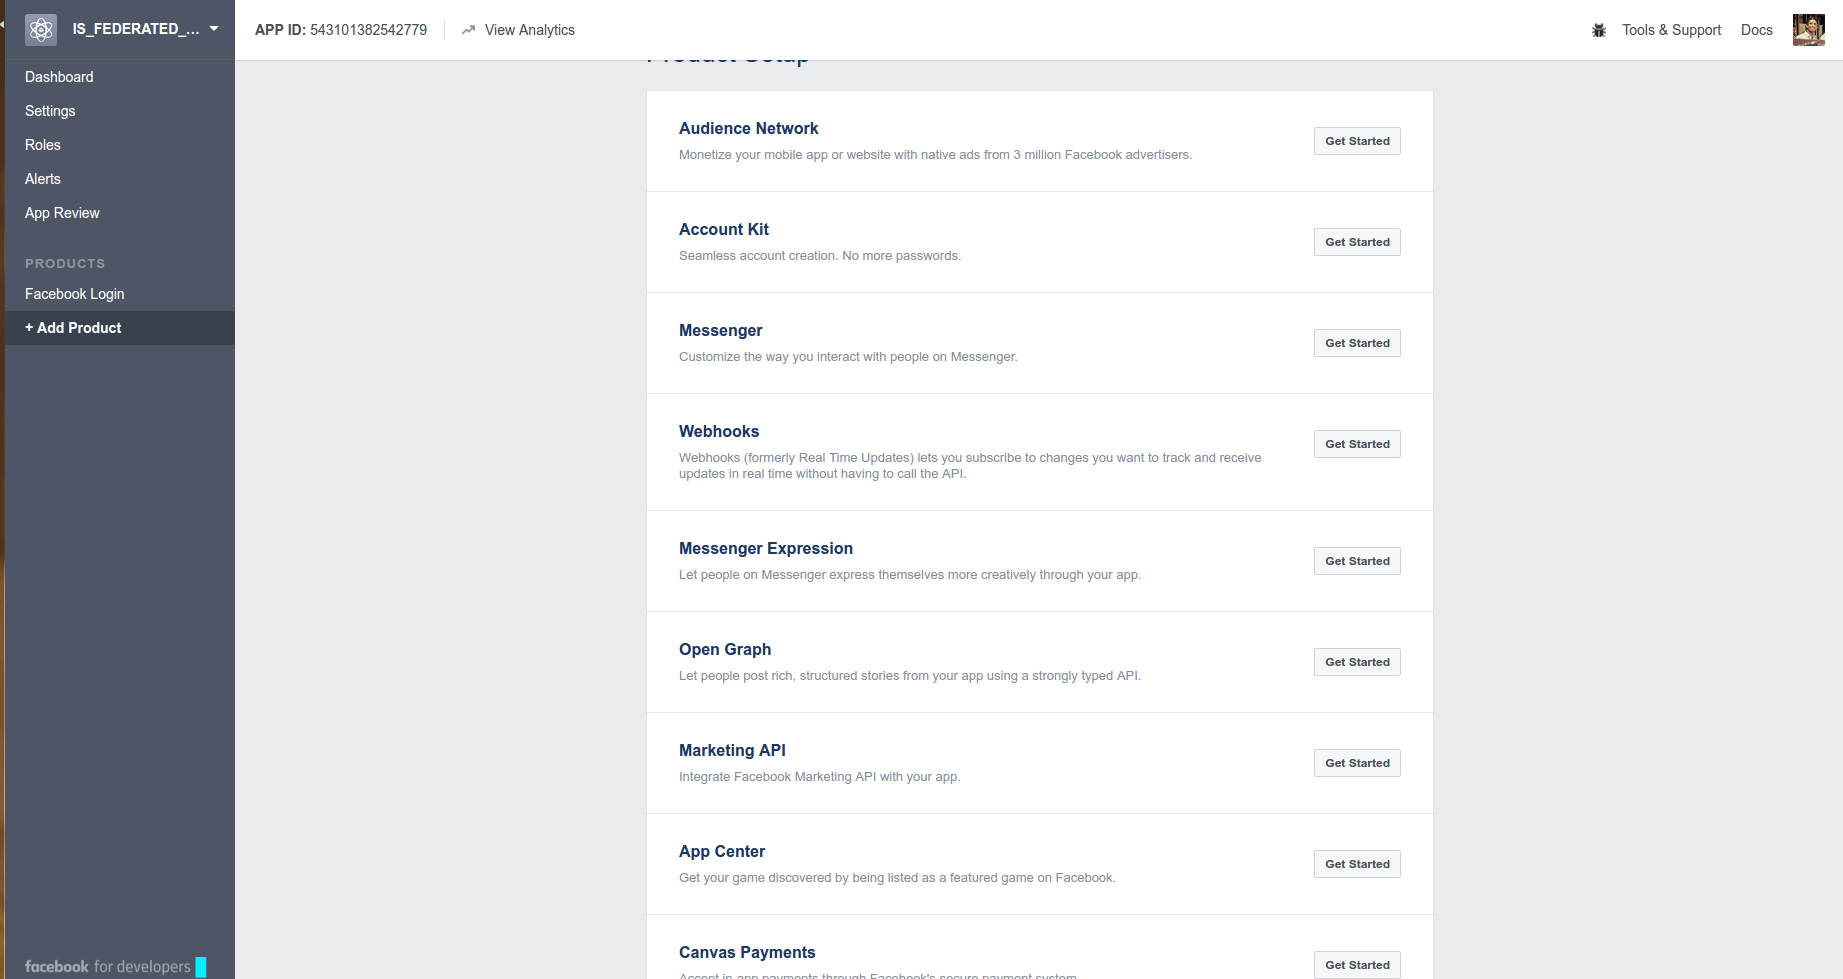 Creating an OAuth Application in Facebook (API v2 7) to use